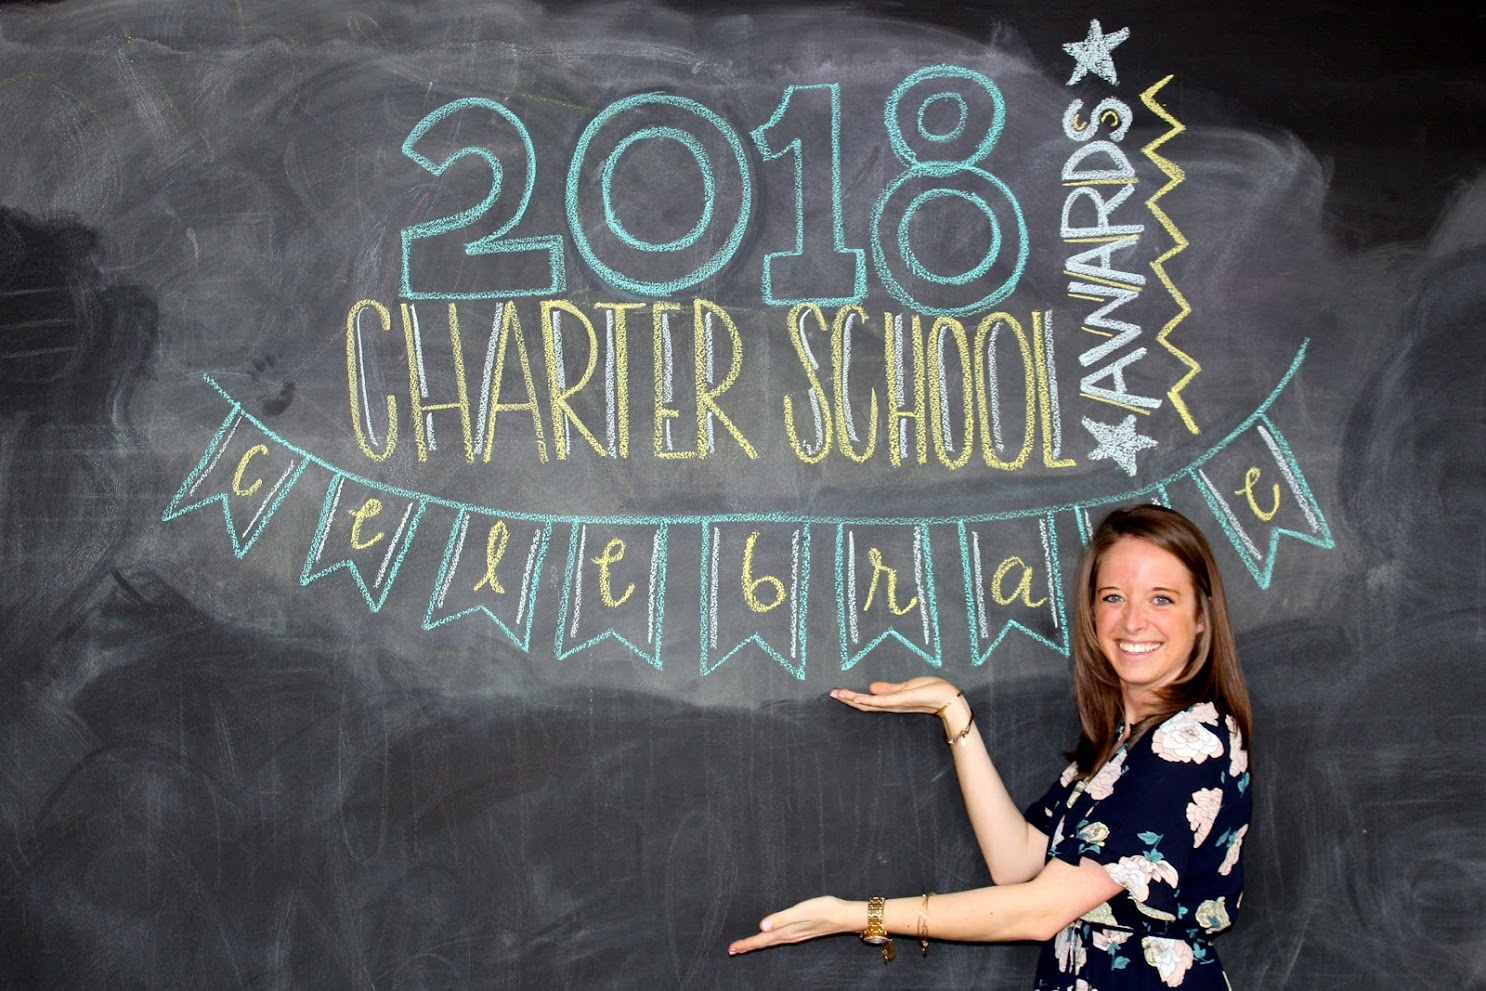 A photo of Jennifer Villwock, finalist for 2018 Charter Teacher of the Year.